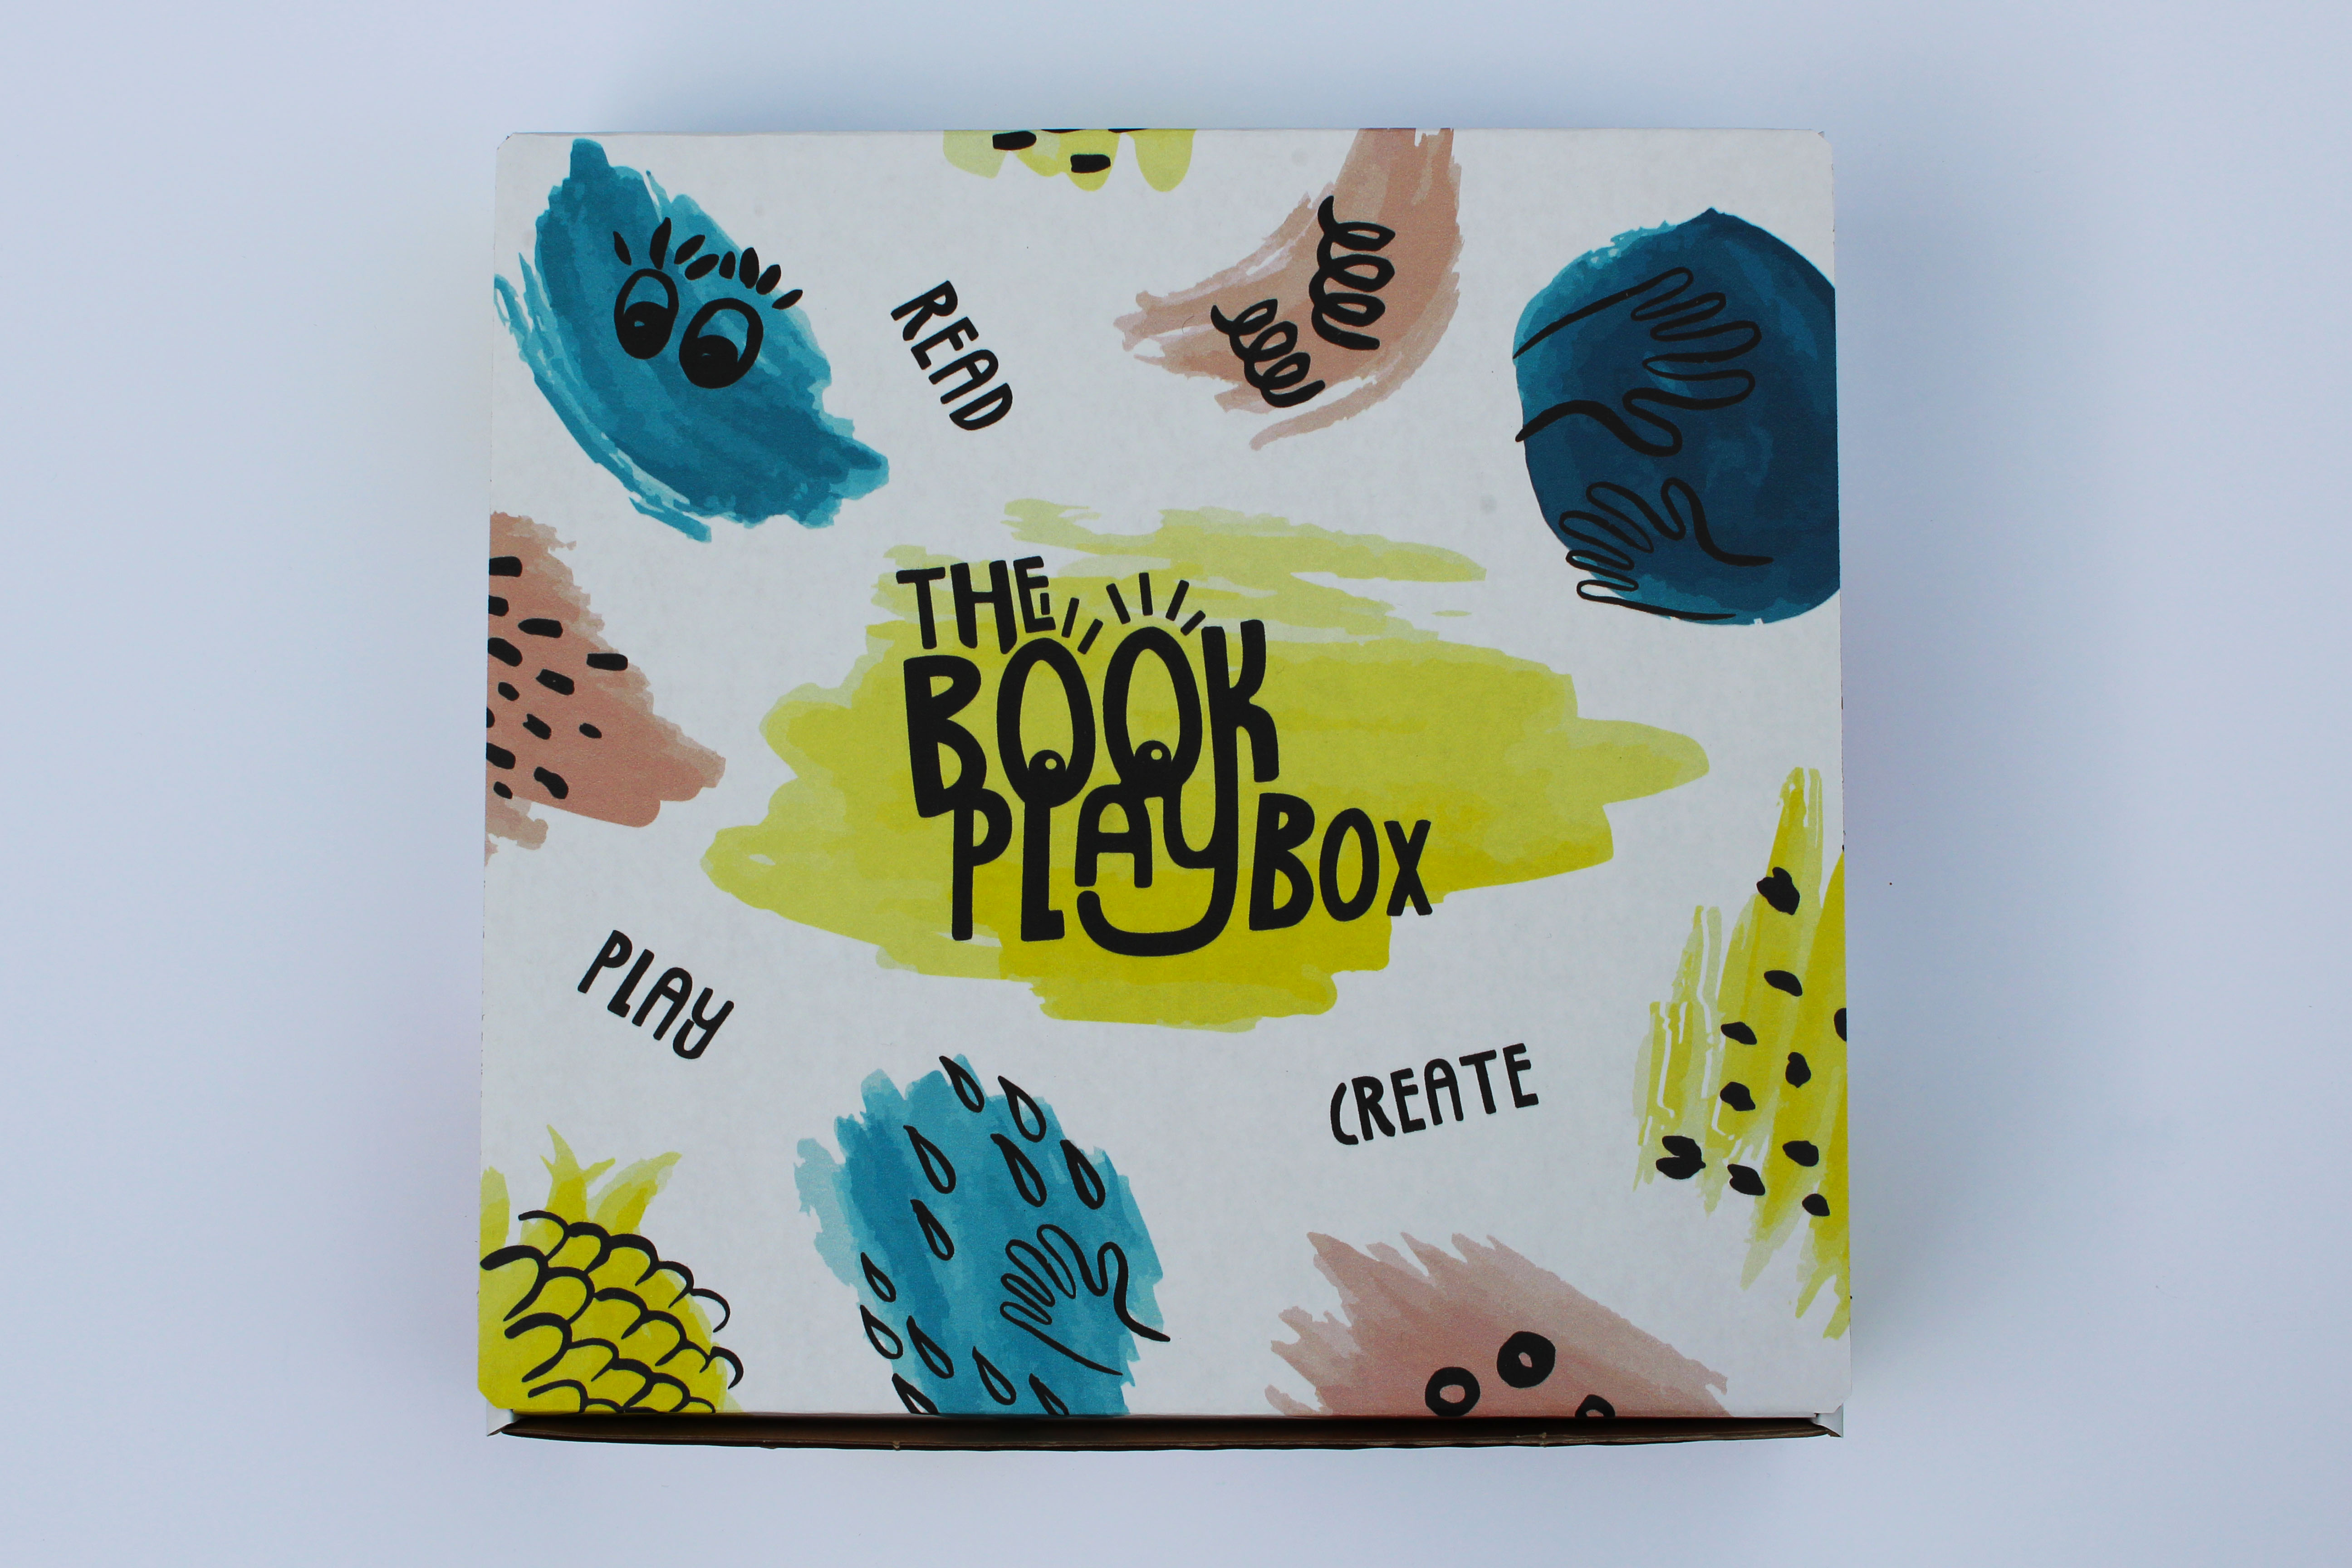 Lid of The Book Playbox